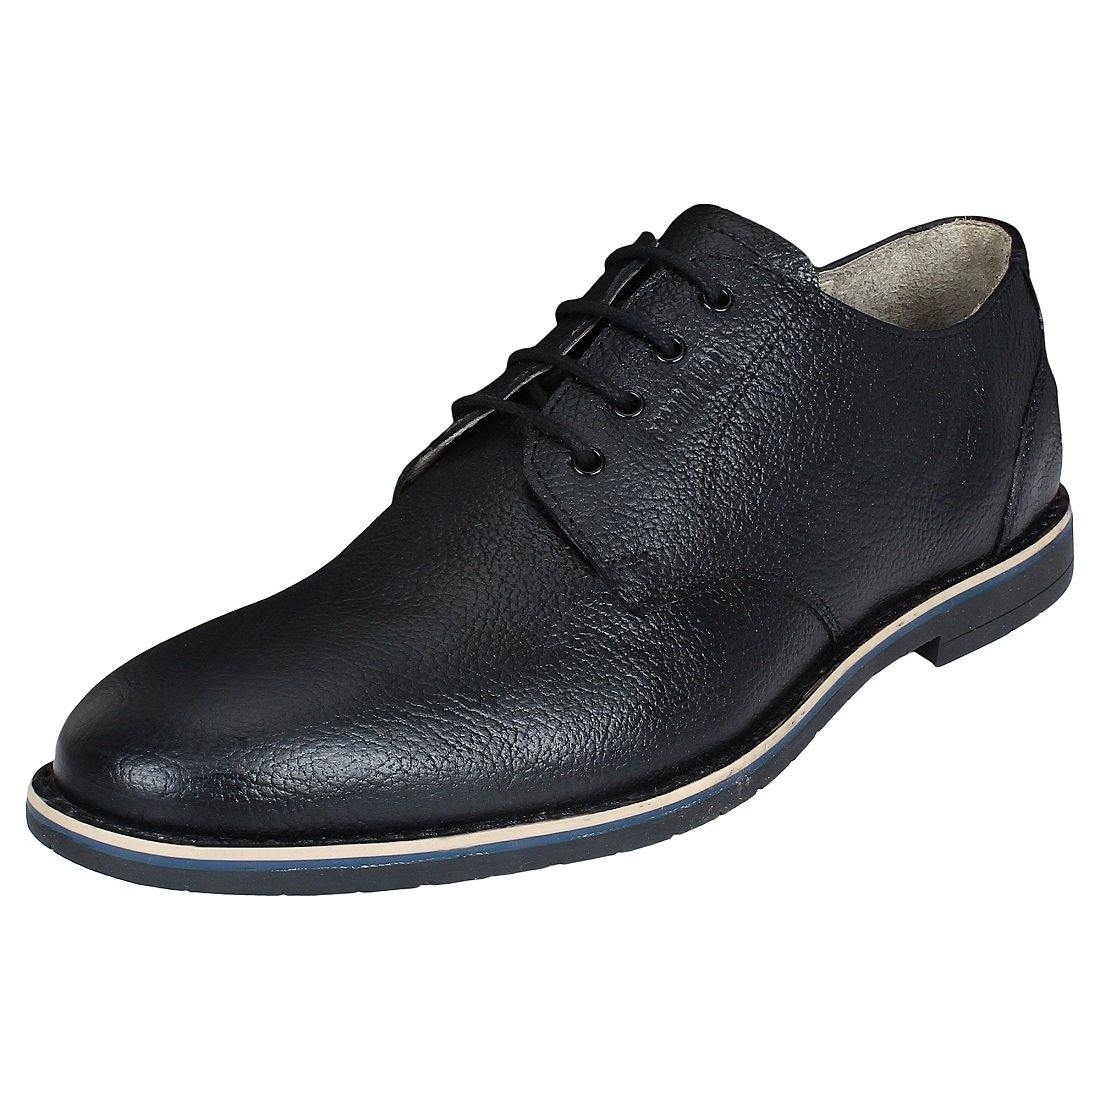 SeeandWear Pure Leather Formal Shoes